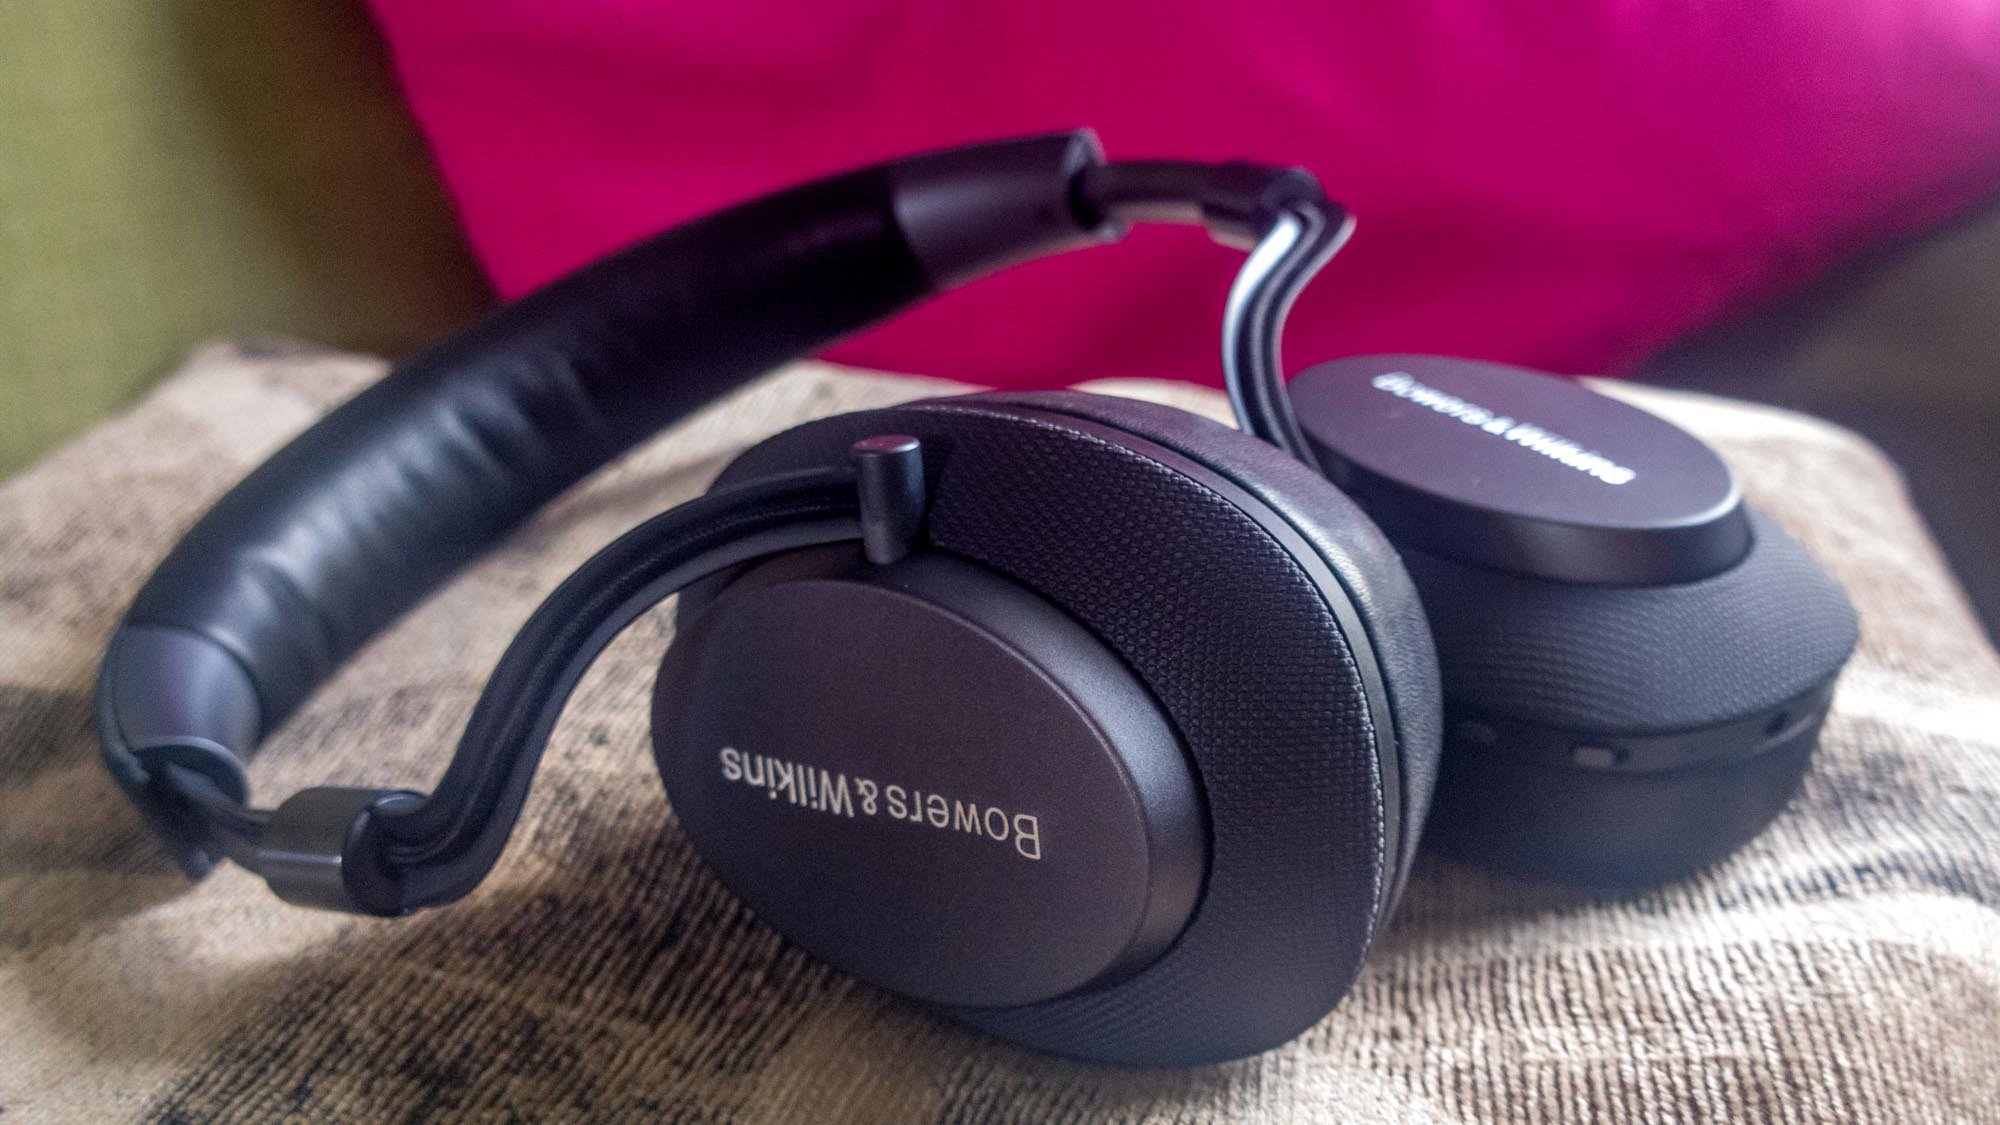 brand new 307de 2b5a1 Bowers & Wilkins PX review: A stylish, understated alternative to ...